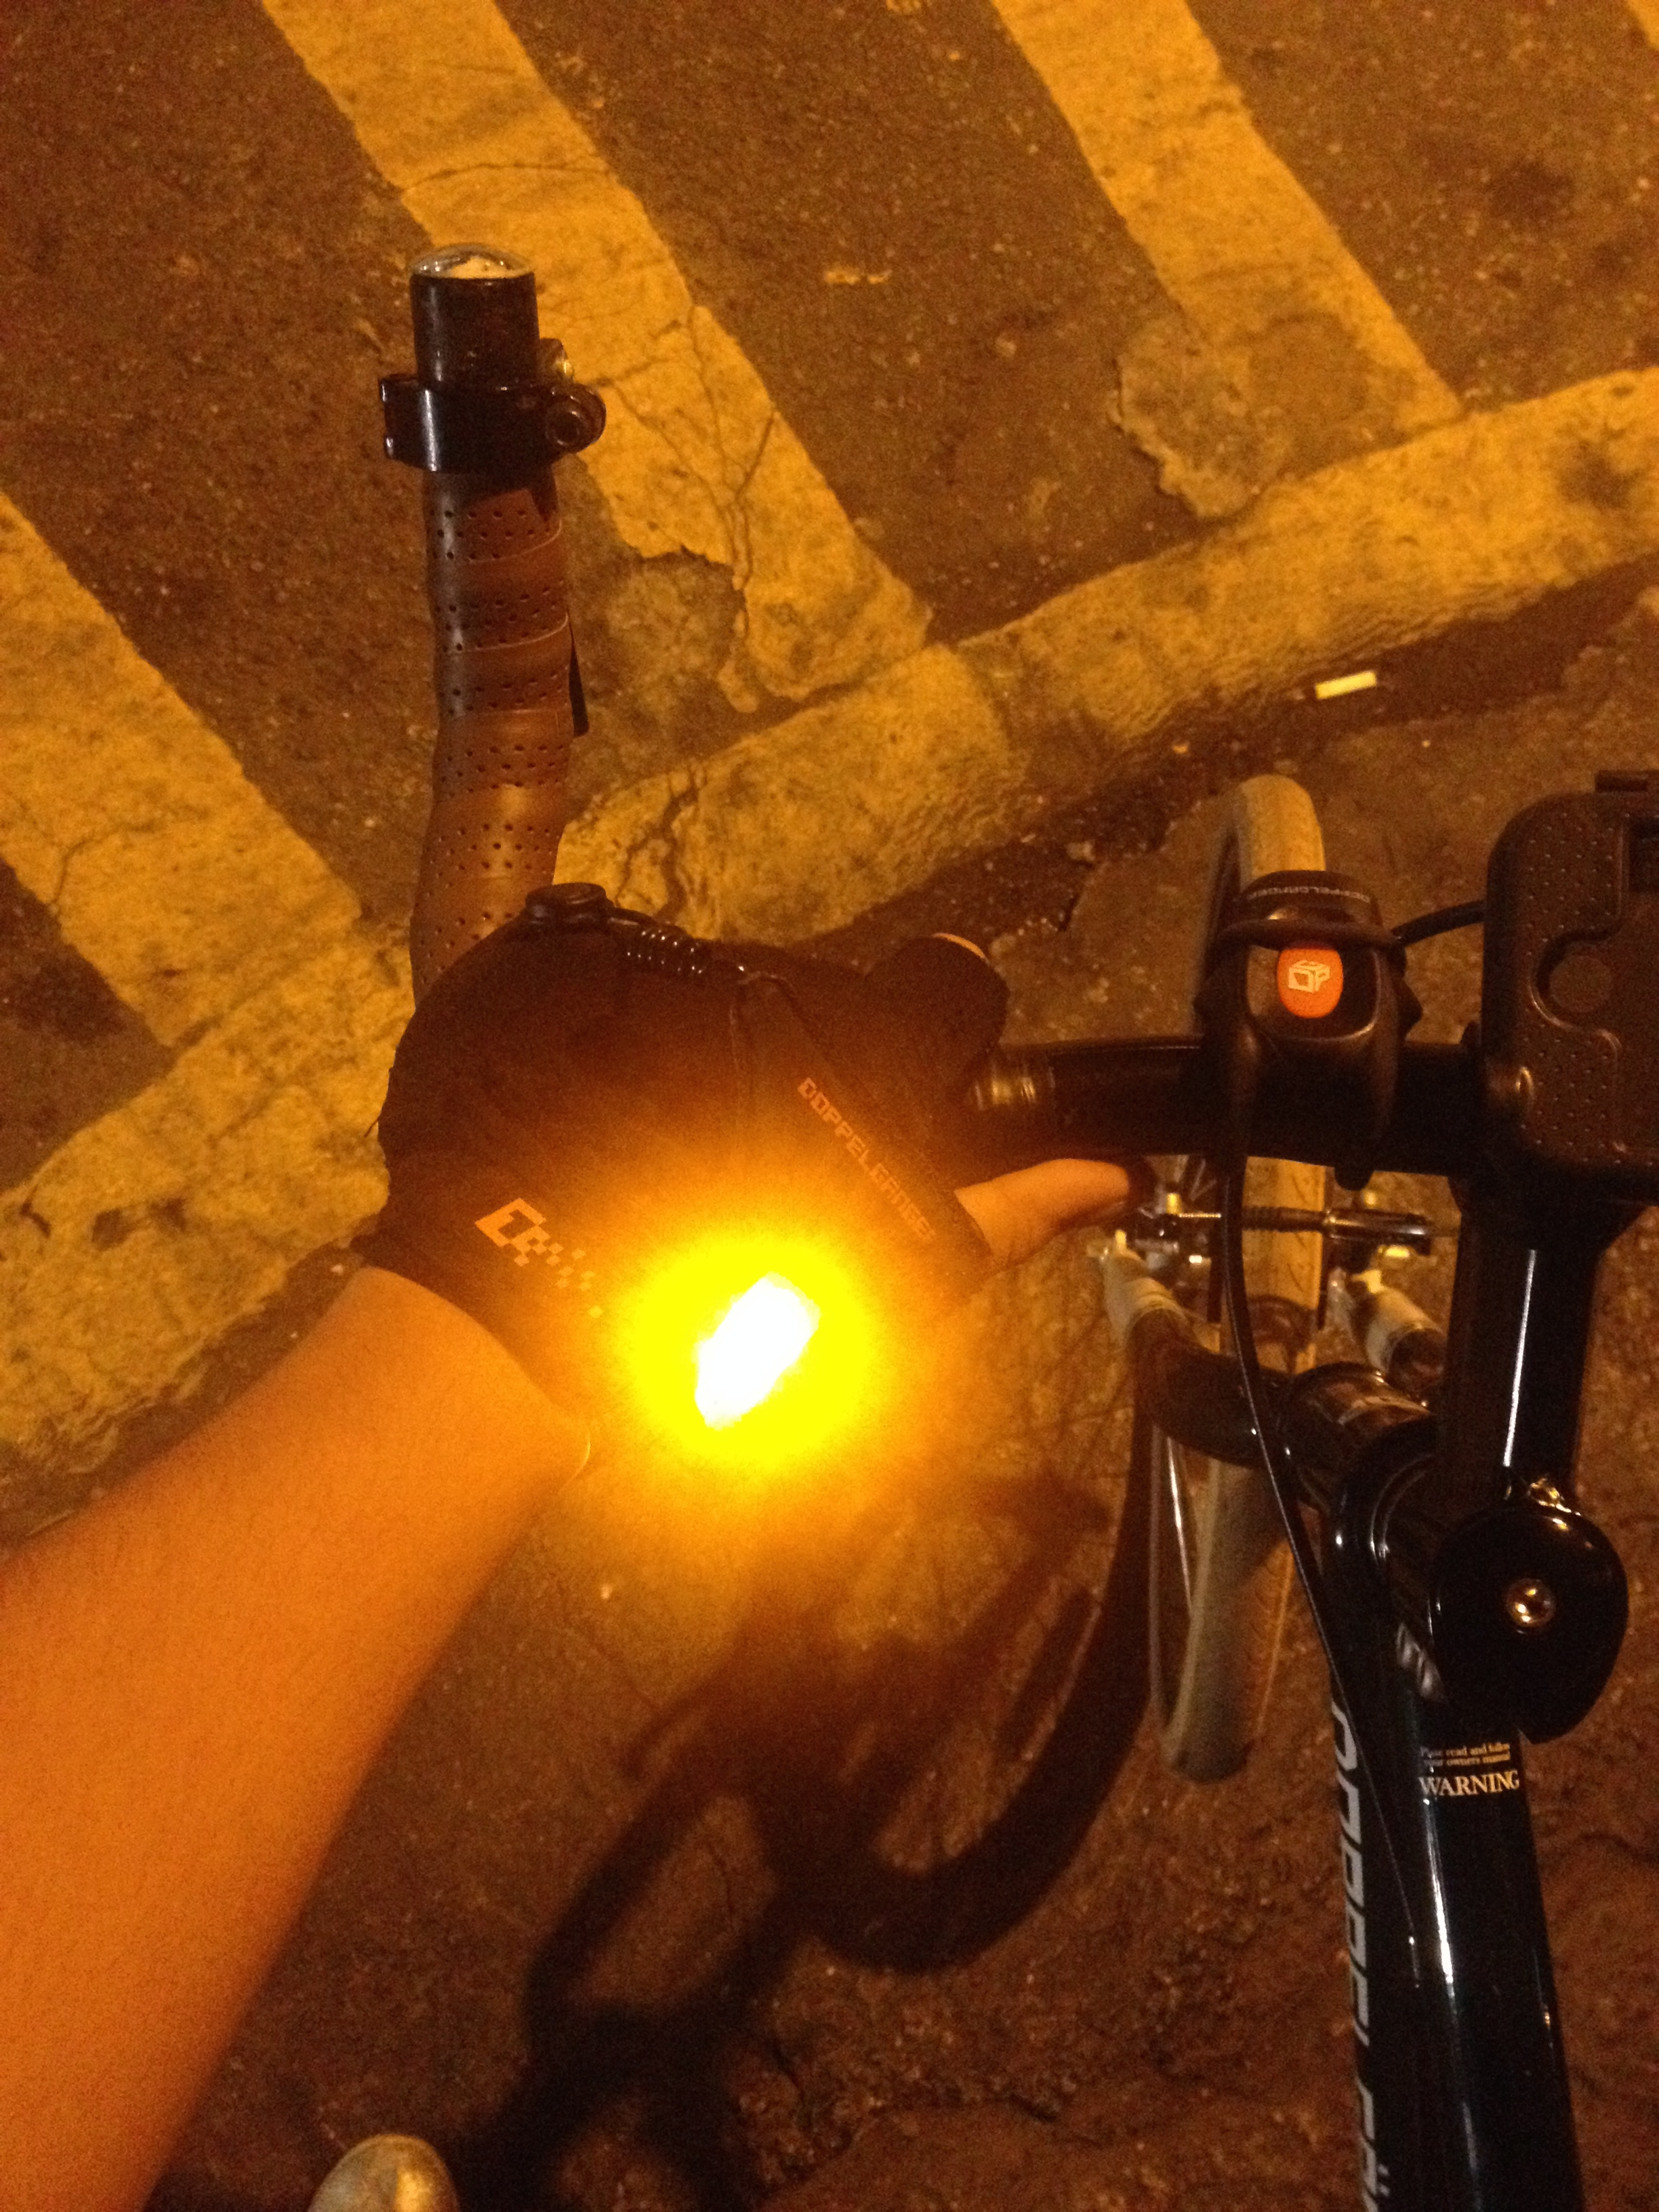 The gloves also come with lights on them for extra safe night riding.